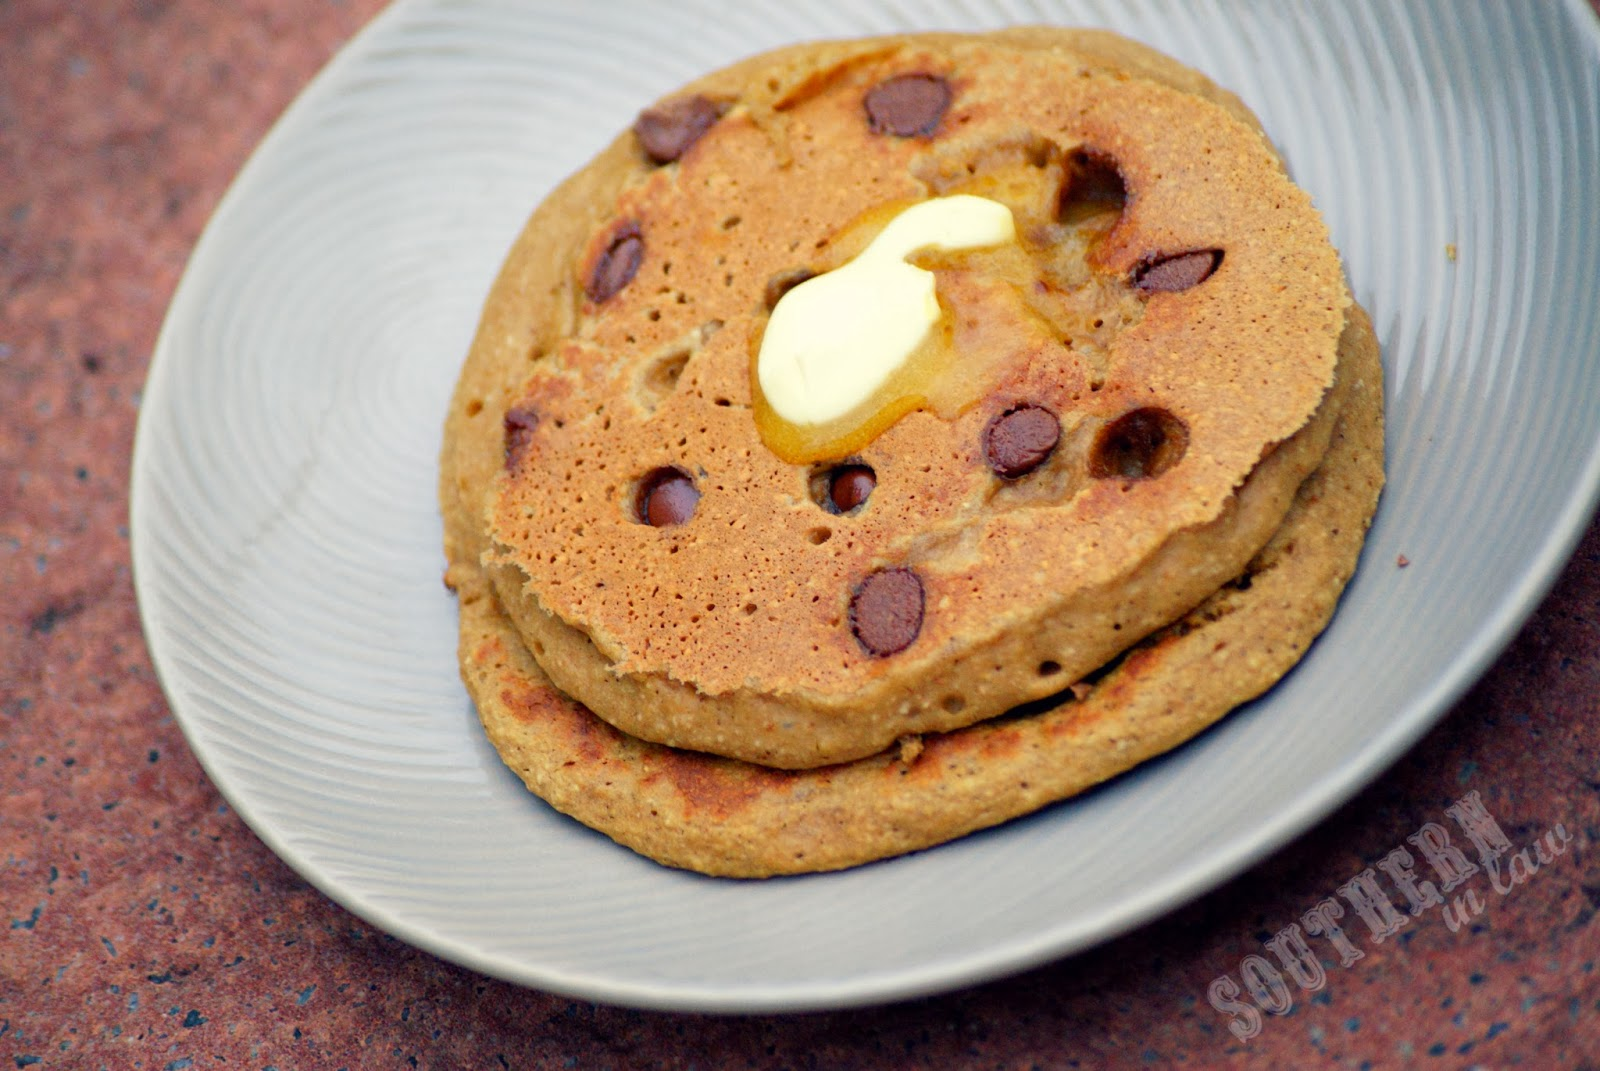 Peanut Butter Chocolate Chip Pancakes for Valentines Day